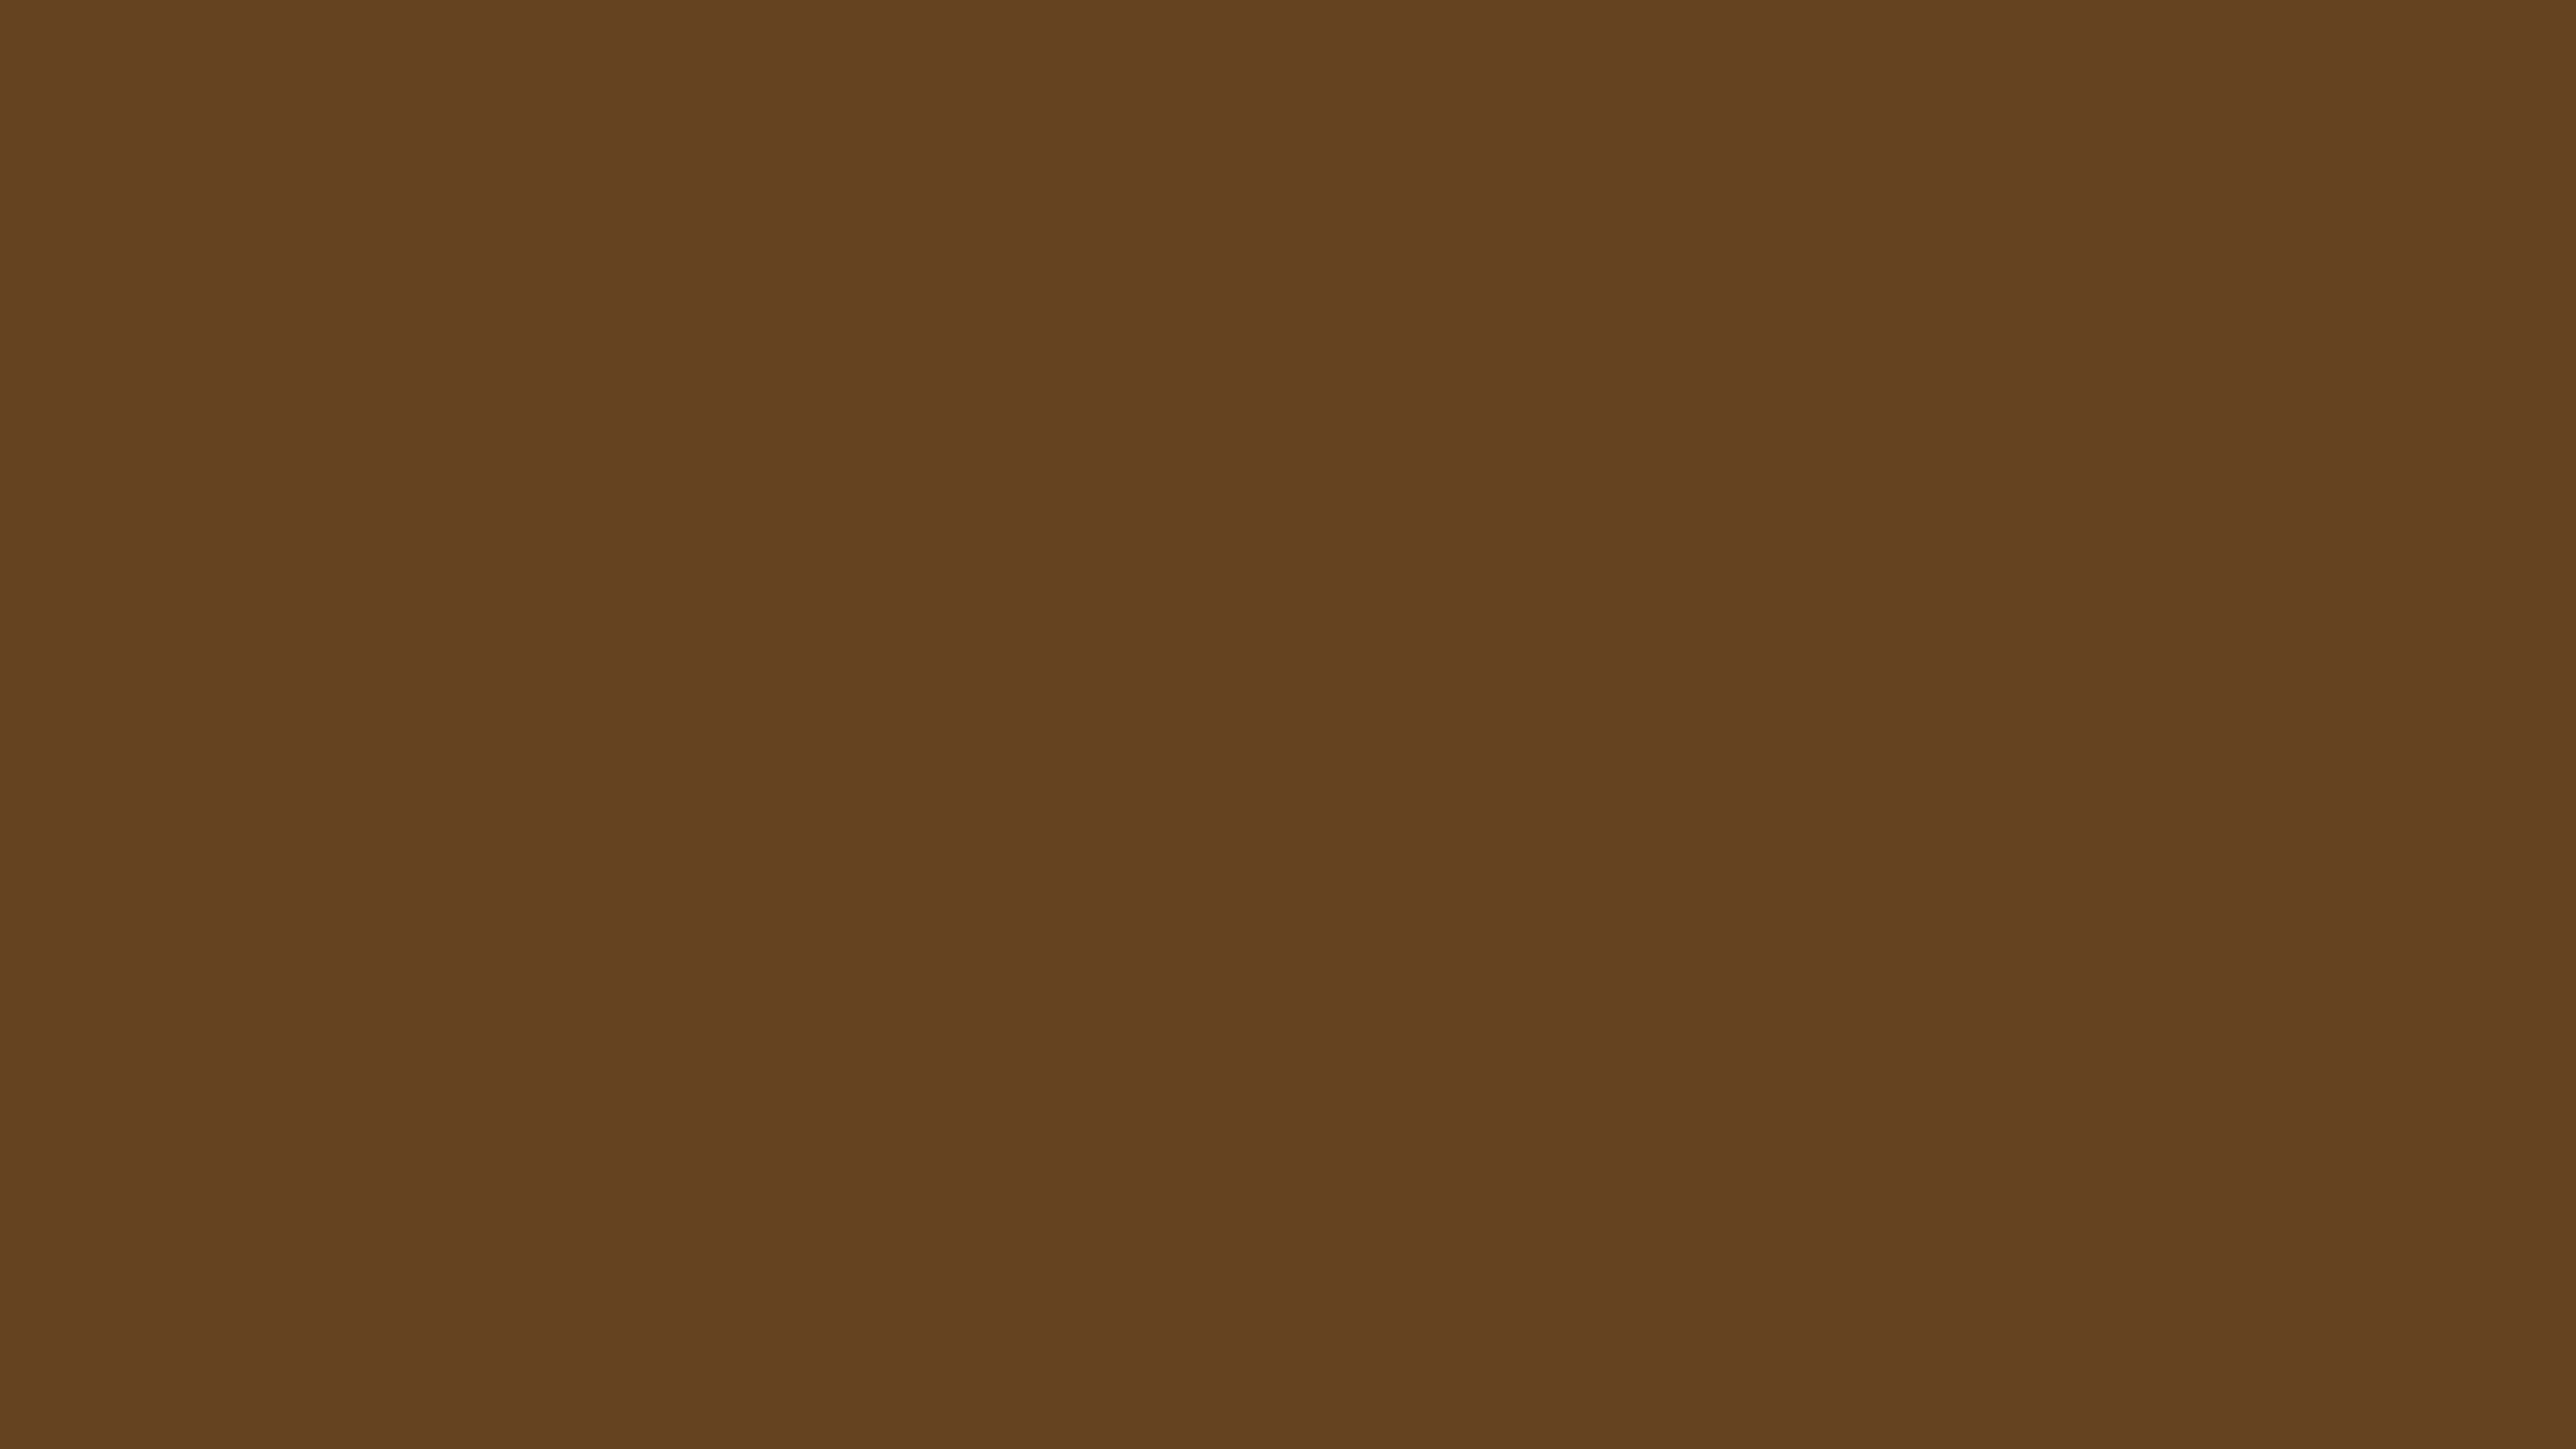 3840x2160 Dark Brown Solid Color Background